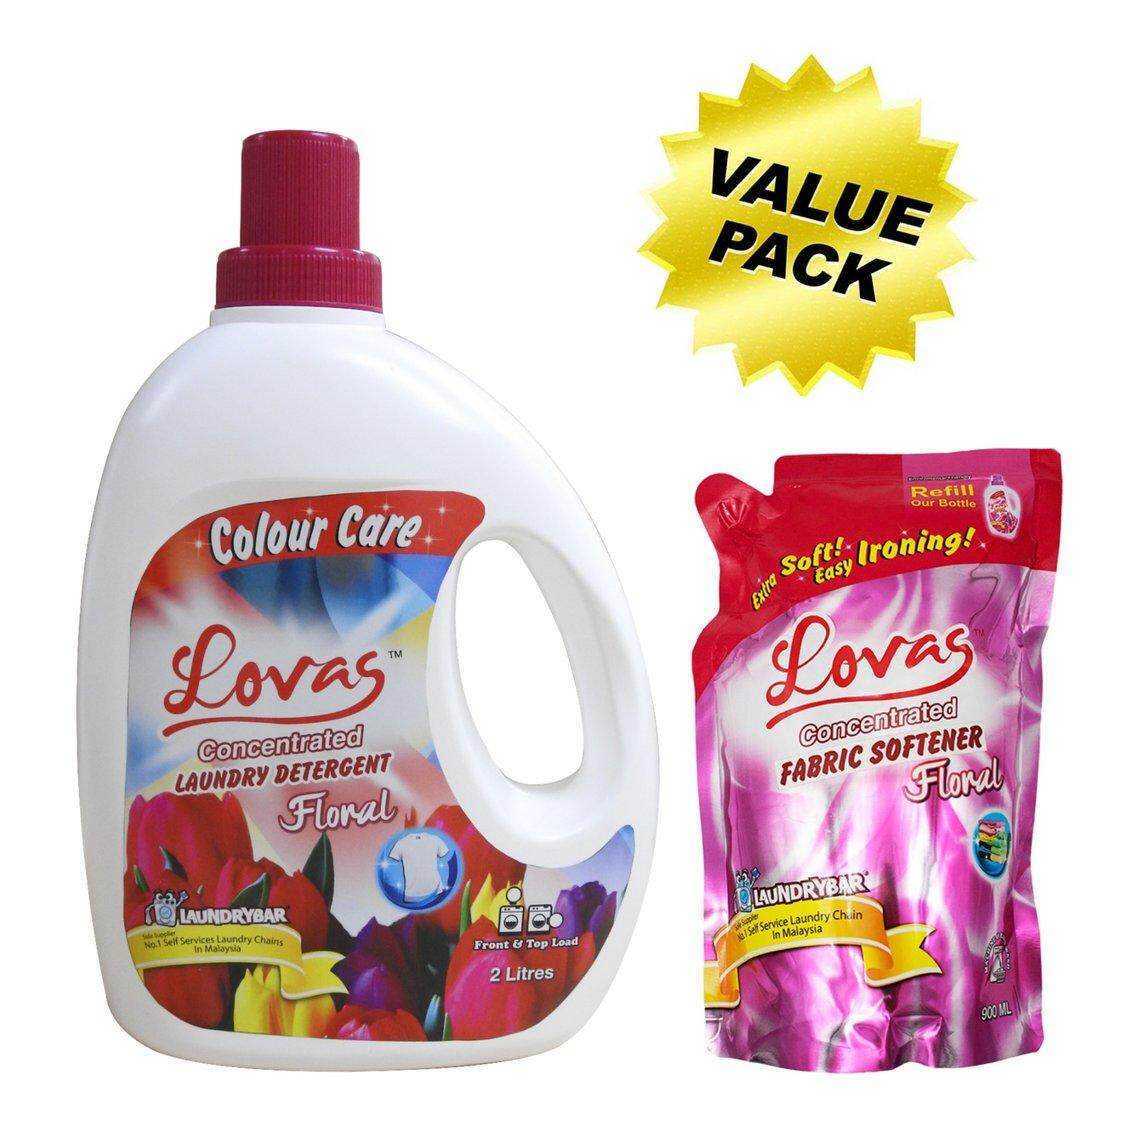 Value Pack - LOVAS Concentrated Laundry Detergent (2L) + LOVAS Concentrated Fabric Softener (900mL Refill Pack) [FLORAL]